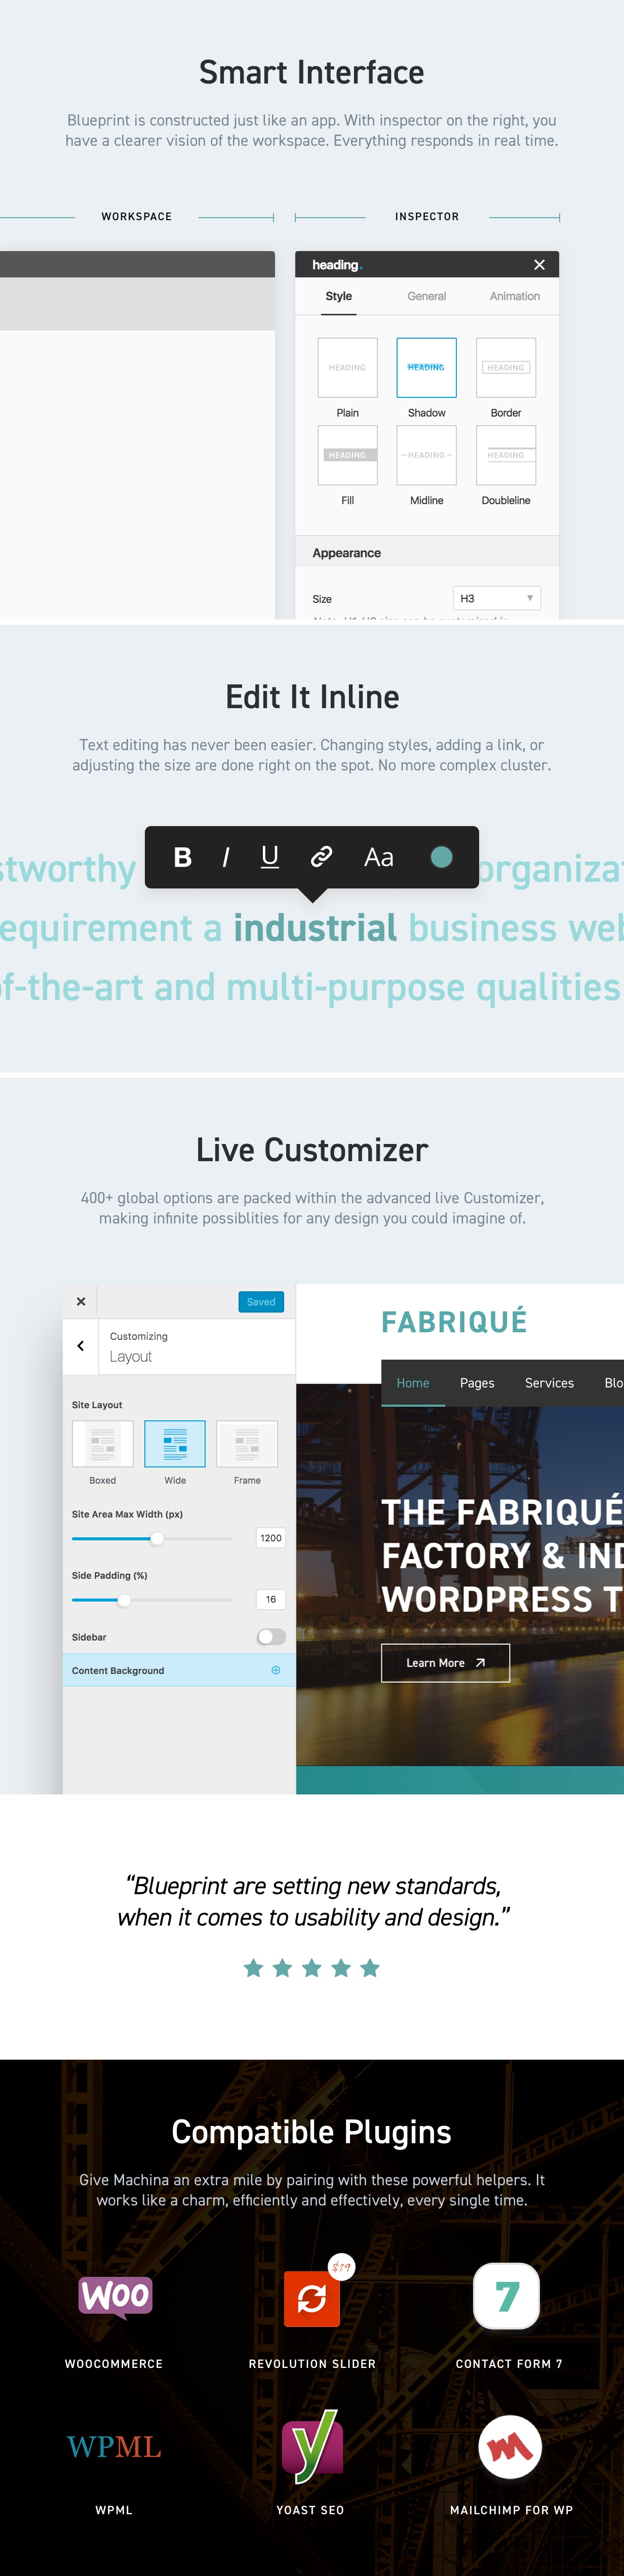 Fabriqu factory industrial business wordpress theme by twisttheme fabriqu is a state of the art multi purpose wordpress theme meticulously designed to cater to factory and manufacturing industry related websites malvernweather